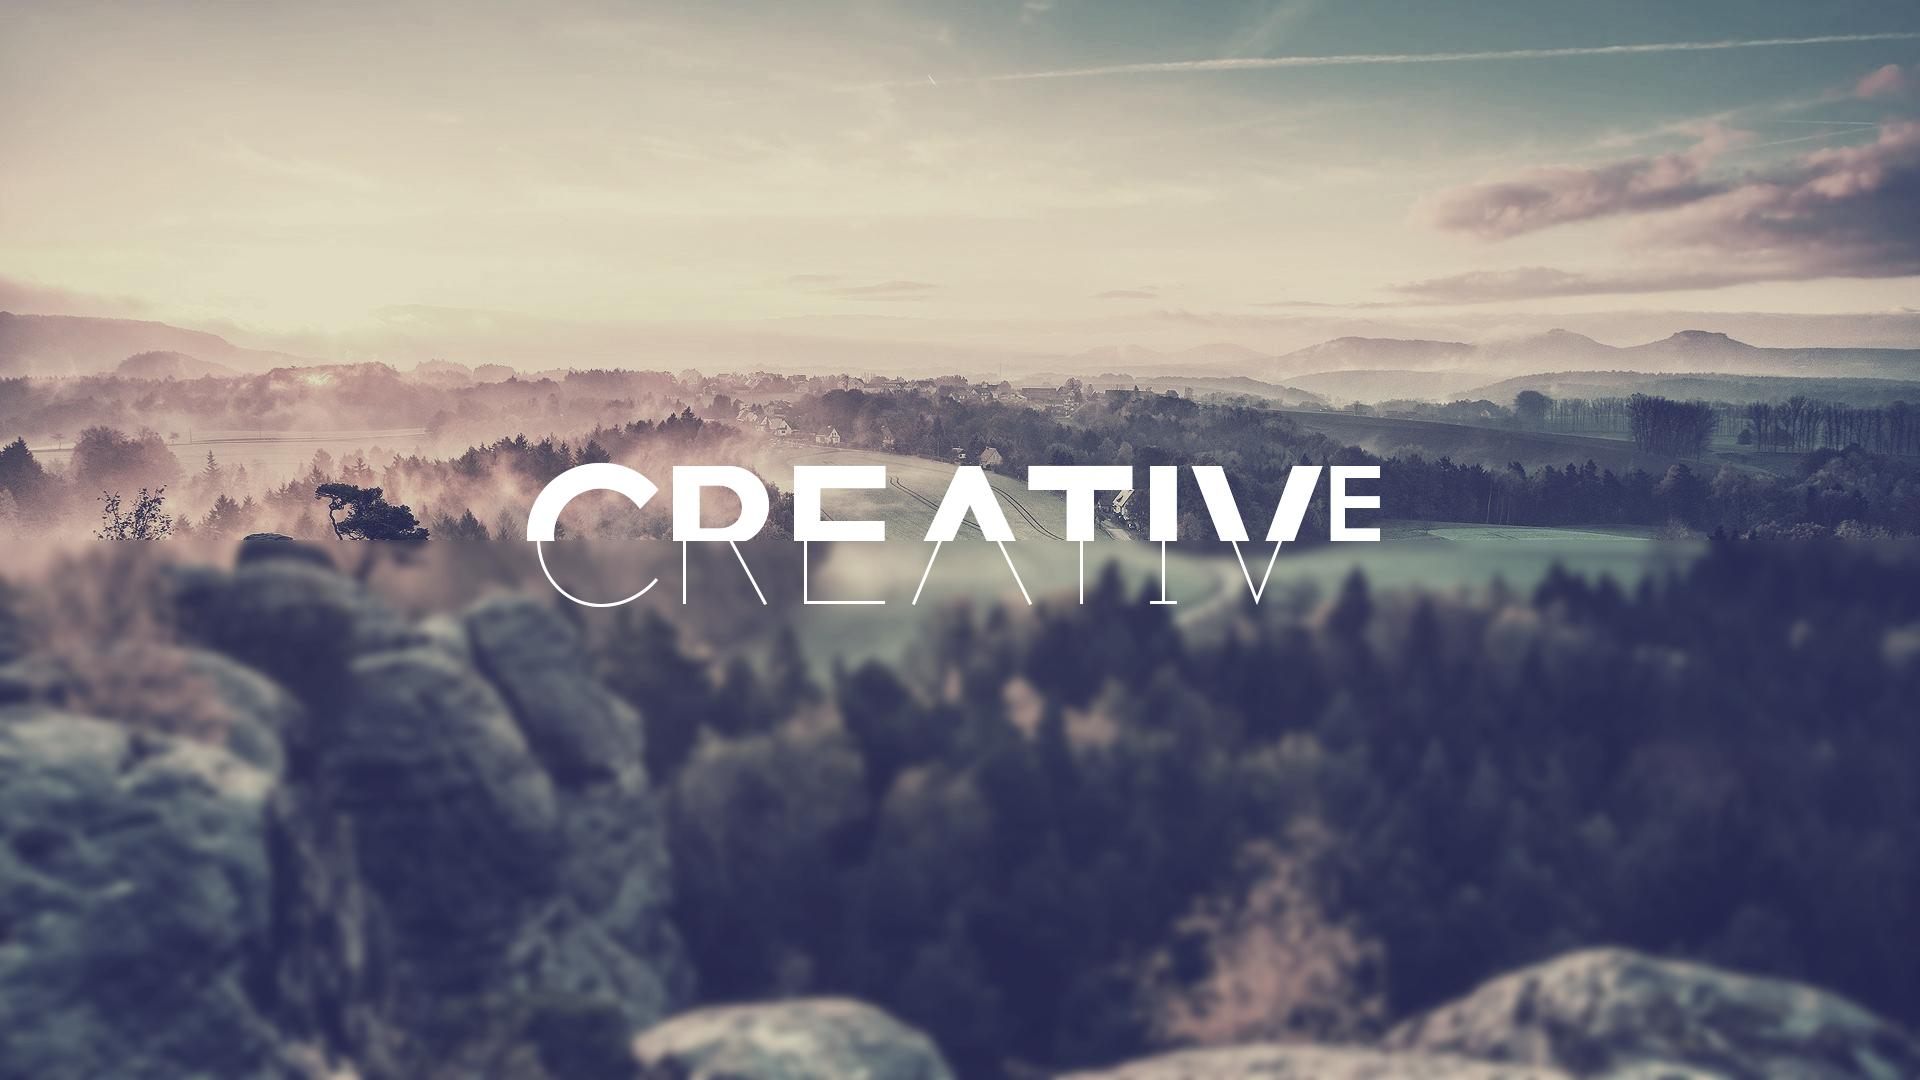 1920x1080 be creative laptop full hd 1080p hd 4k wallpapers, images